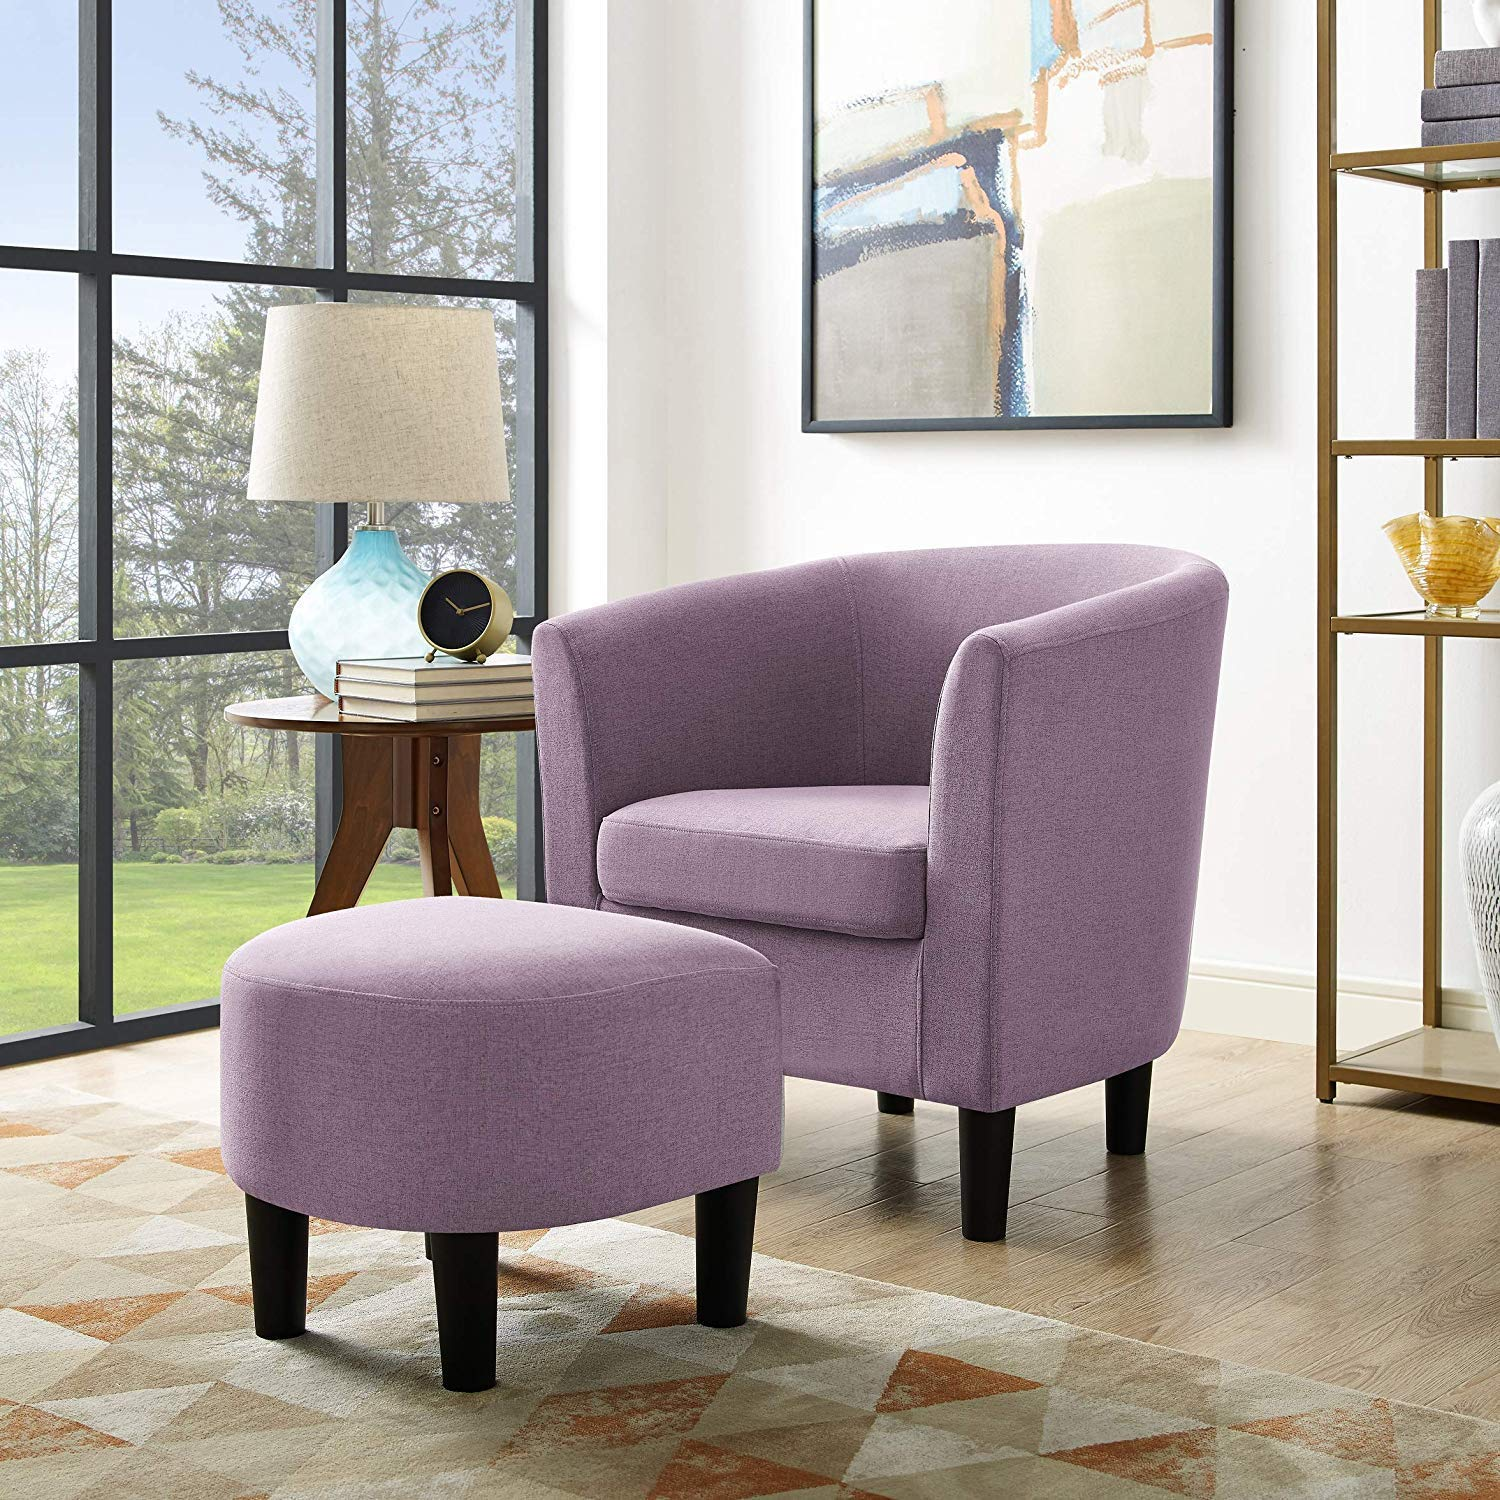 fabric reading chair amazing reading chair and ottoman design your furniture online Amazon.com: Bridge Modern Accent Chair Linen Fabric Arm Chair Upholstered  Single Sofa Chair with Ottoman Foot Rest Purple: Kitchen u0026 Dining